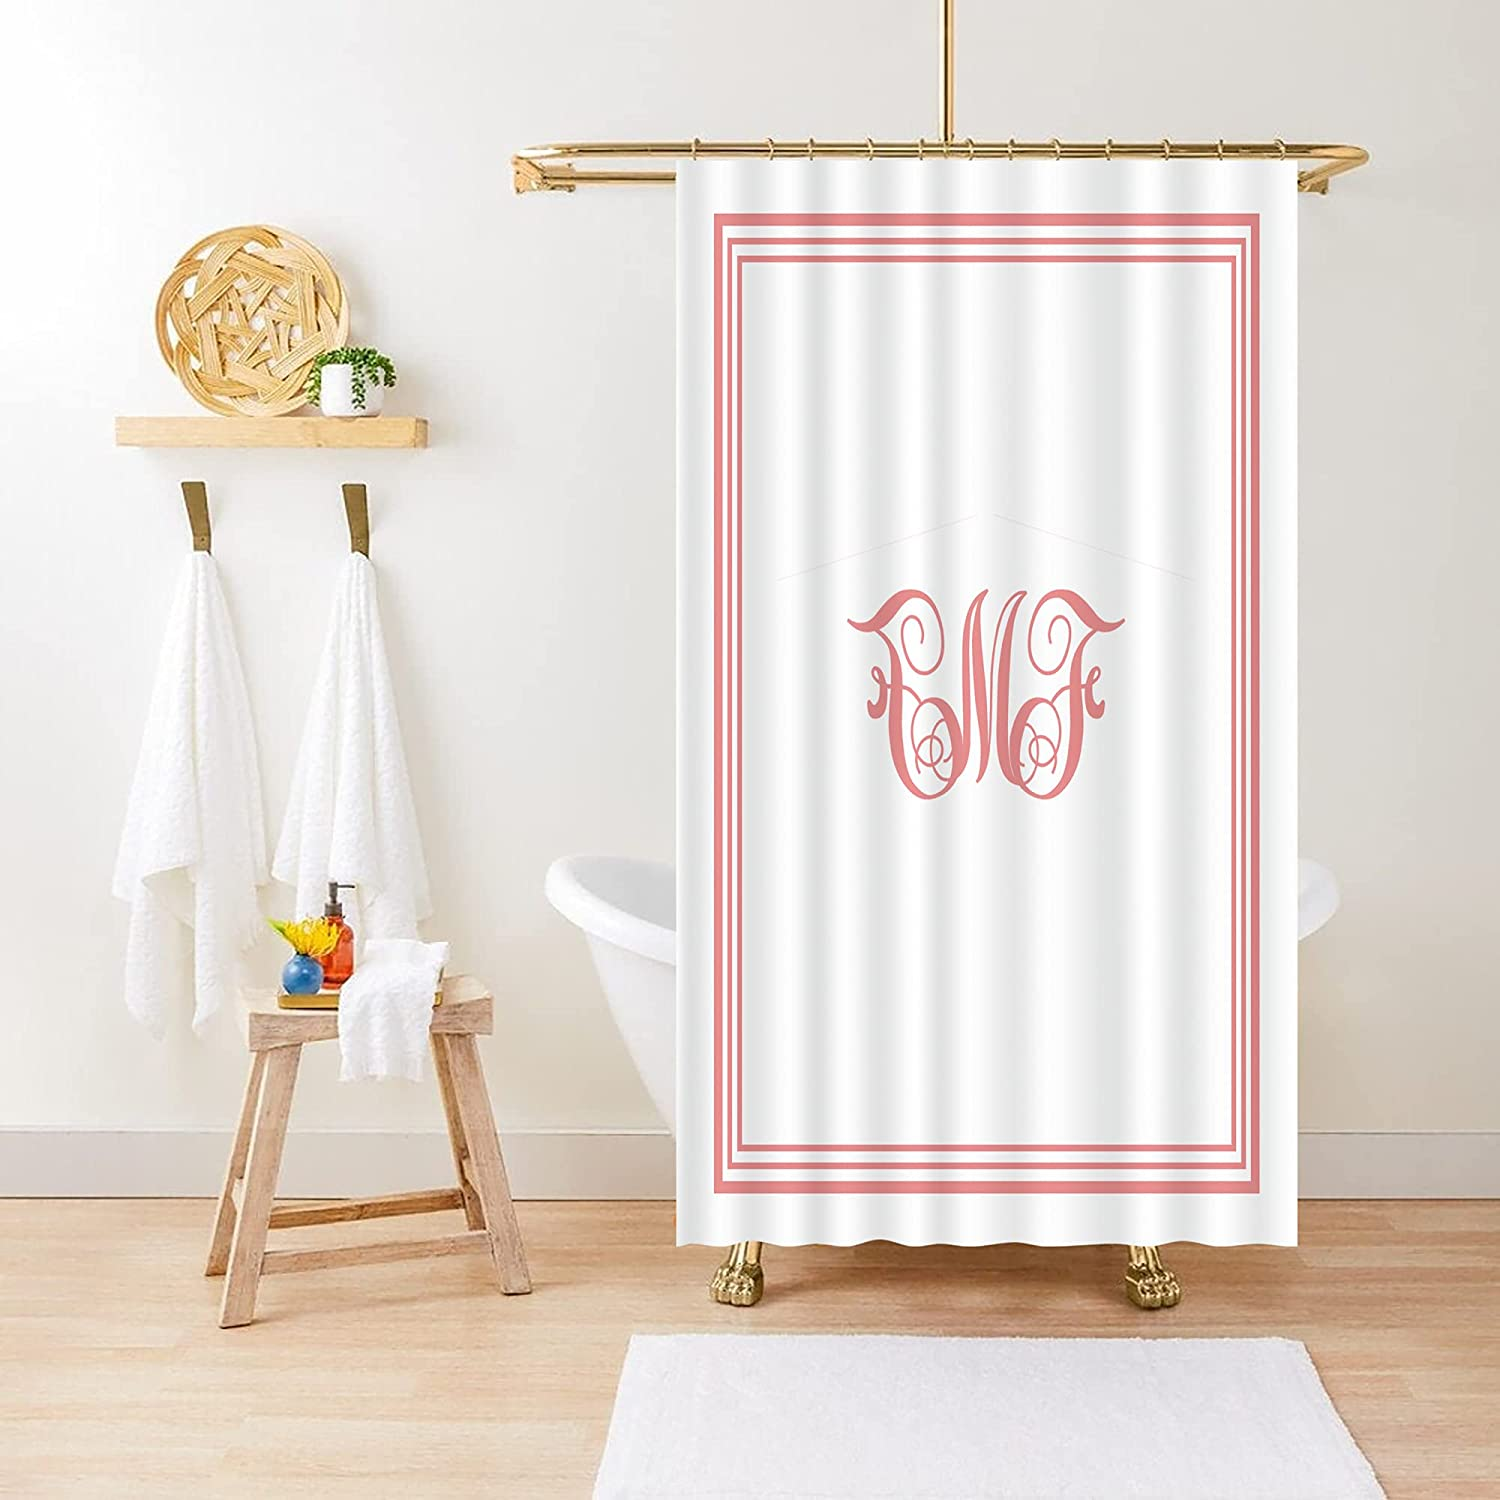 Custom Shower Curtain,Personalized Picture Name Text on Waterproof Shower Curtain,Housewarming Wedding Gift and Home Decor